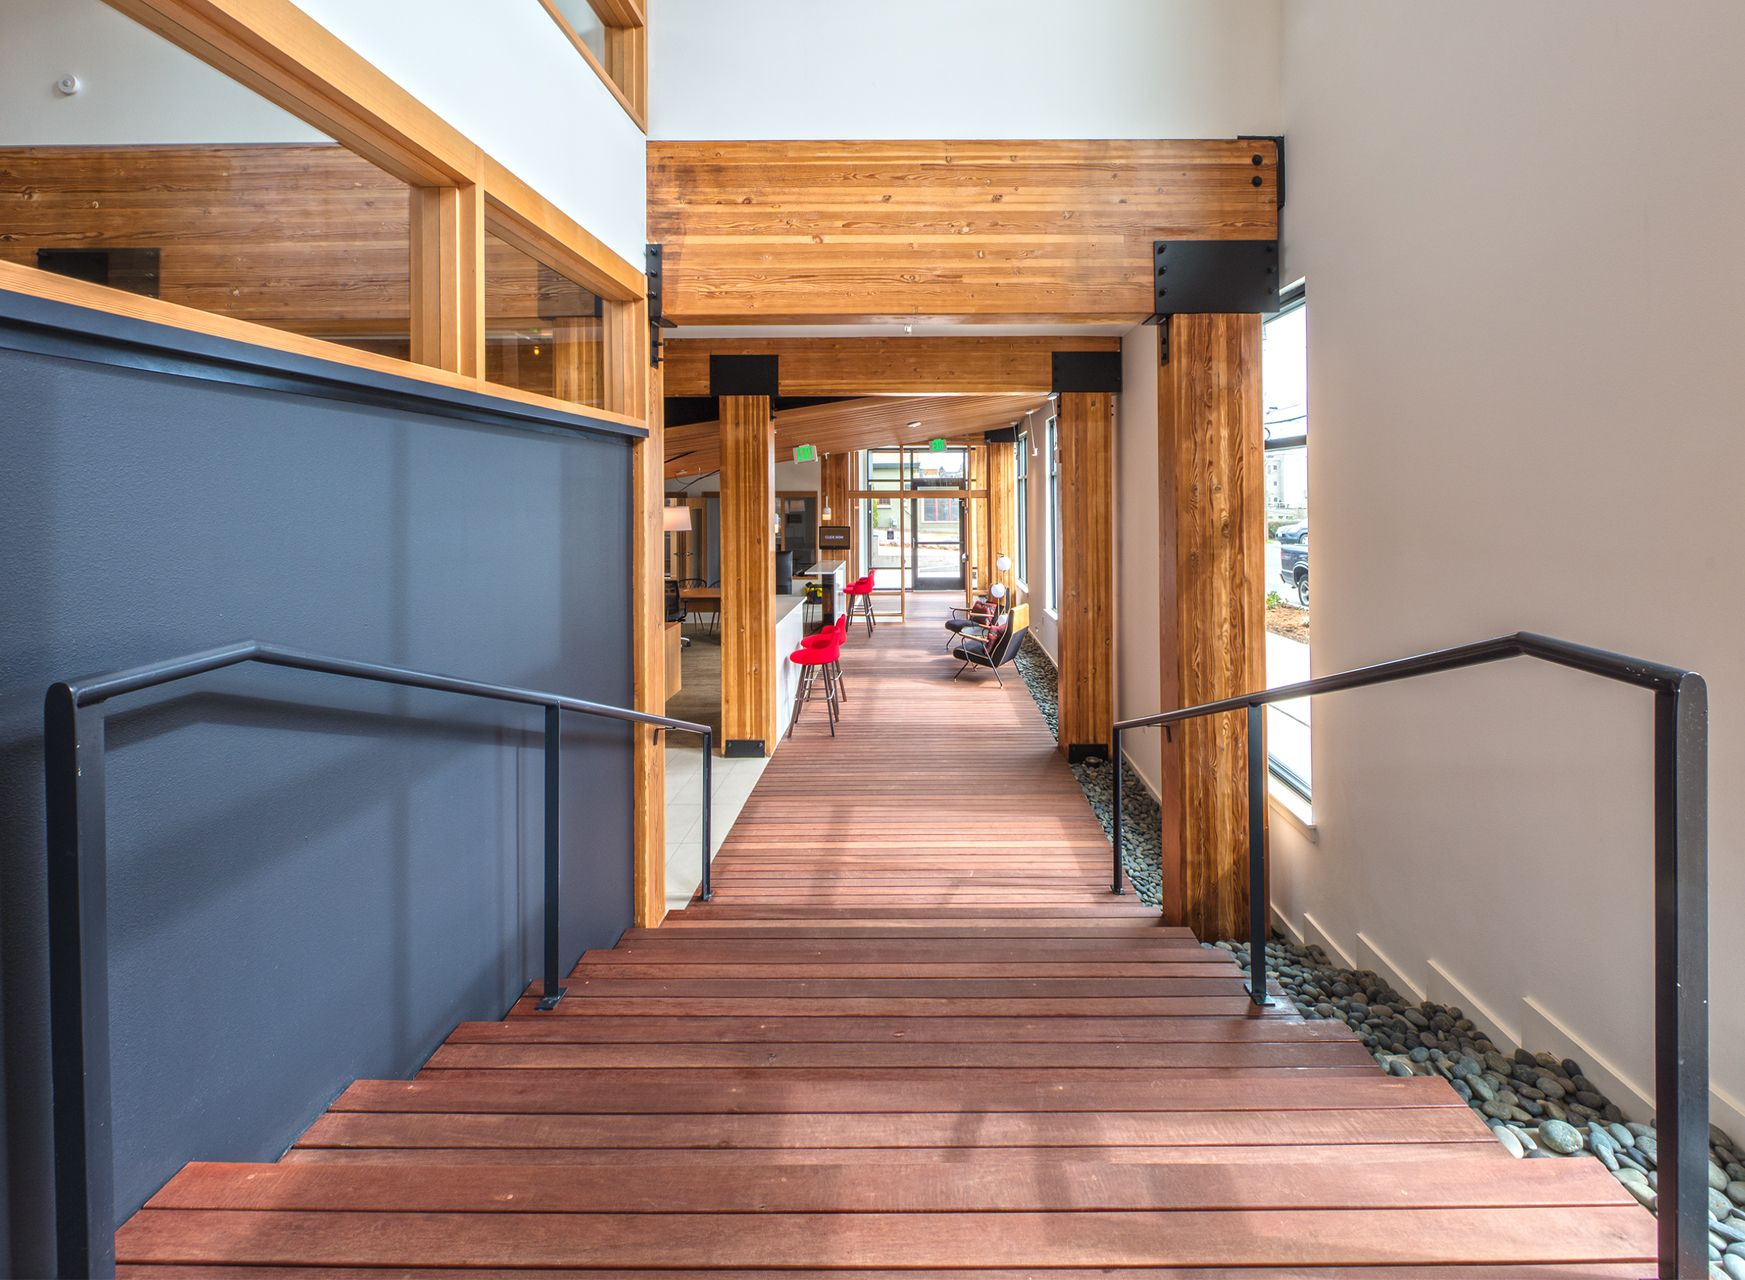 The wood beams are a central design element throughout